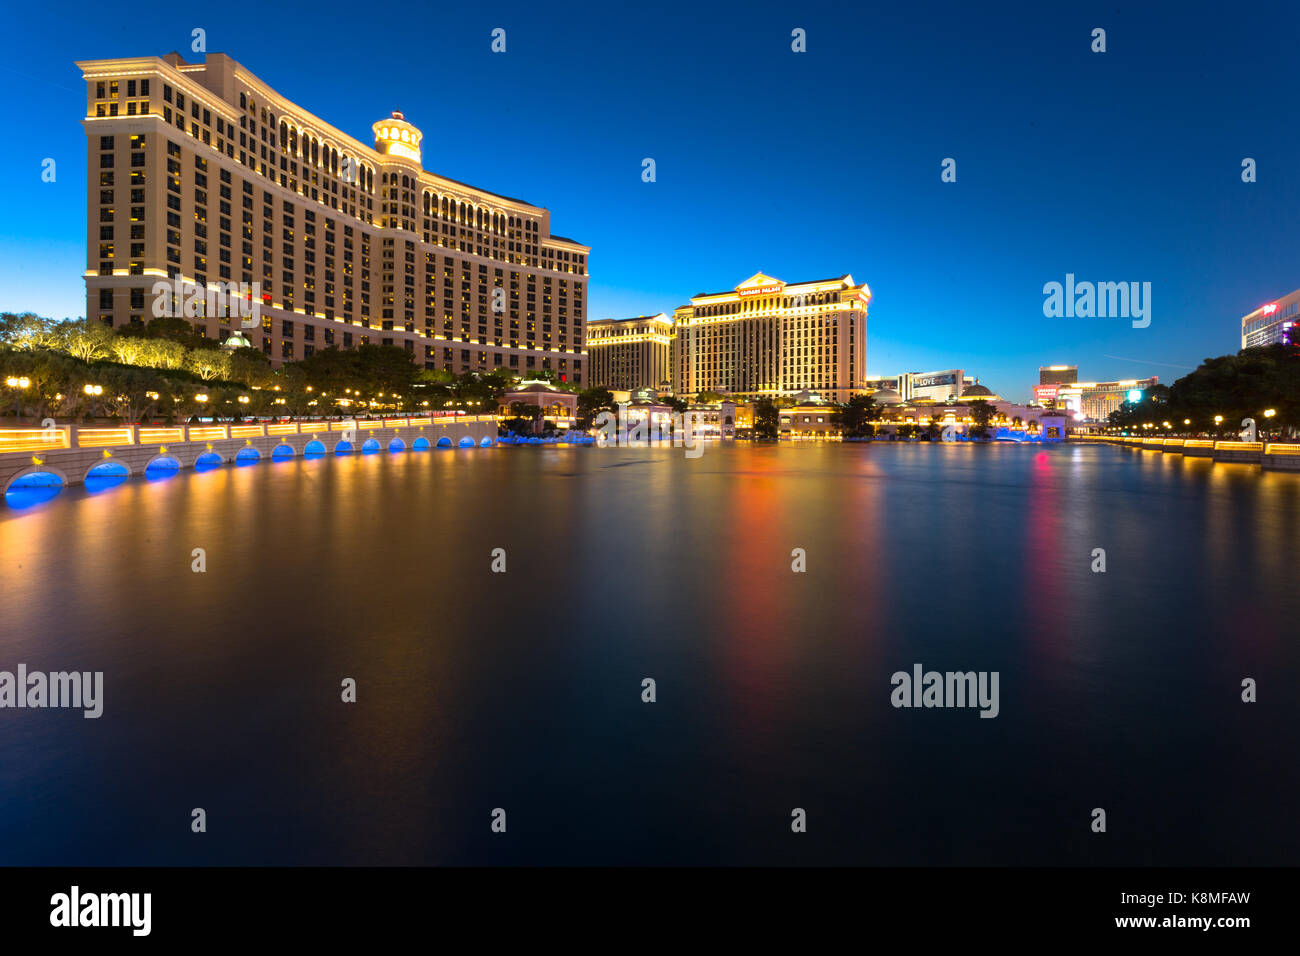 Long exposure of the Bellagio hotel and casino at night against dark blue sky - Las Vegas, NV - Stock Image